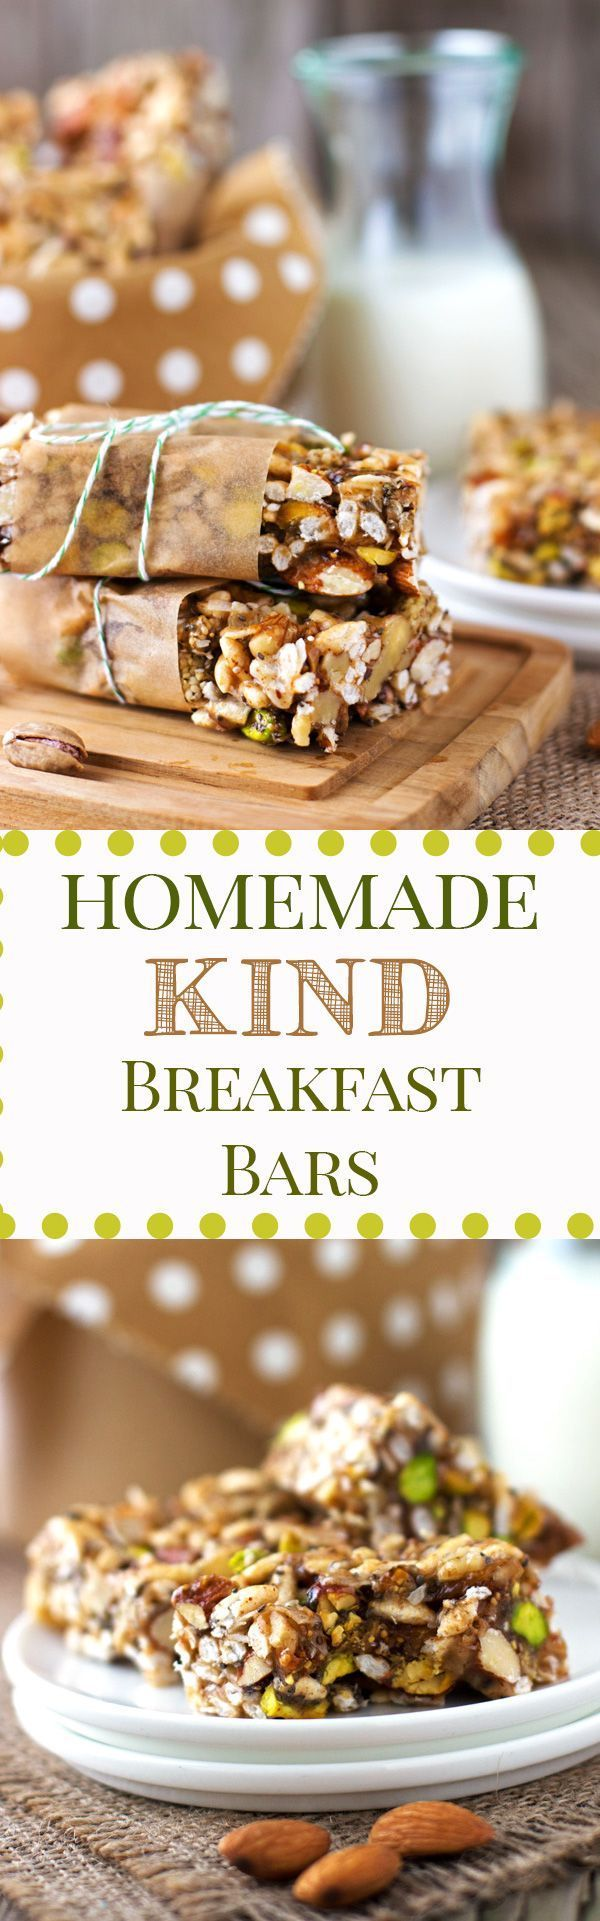 "Homemade ""Kind"" Breakfast Bars : Have you ever wanted to make your own version of ""Kind"" bar in your very own kitchen? This post gives you the formula to create VEGAN Homemade ""Kind"" Breakfast Bars."